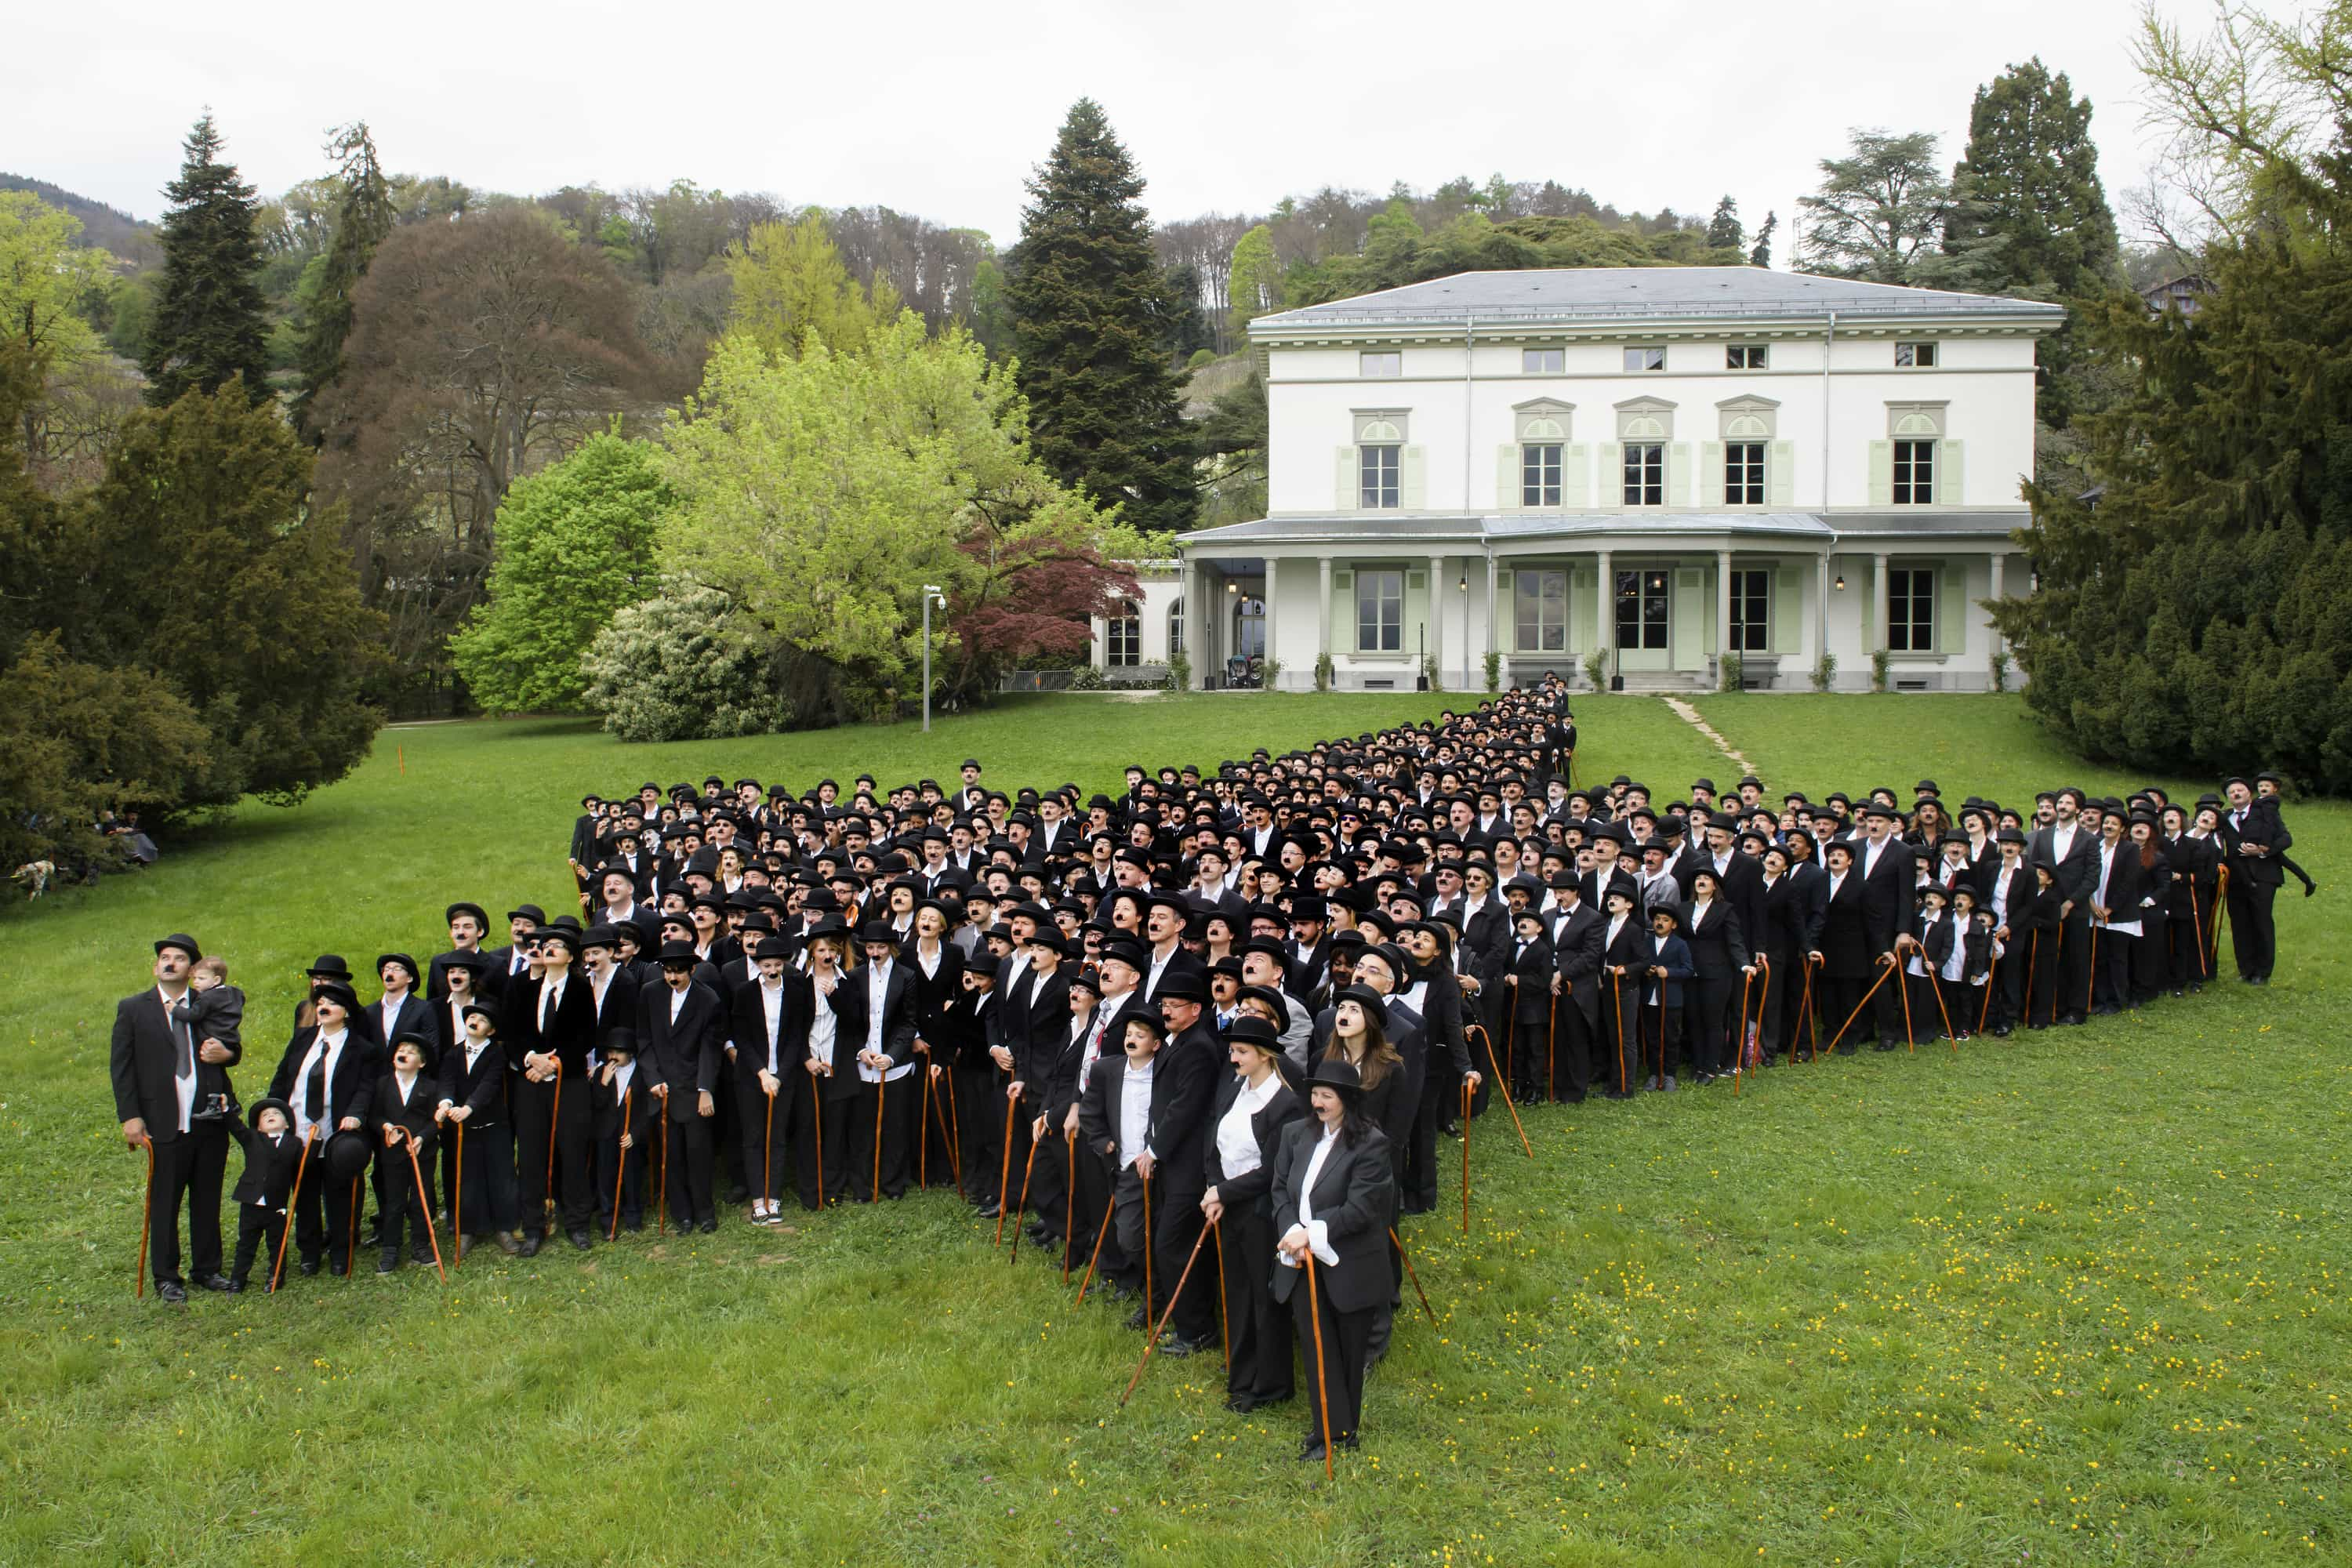 Fans dressed as Charlie Chaplin form a giant star in front of the Manoir de Ban. [Credit: Richard Juilliart/AFP]